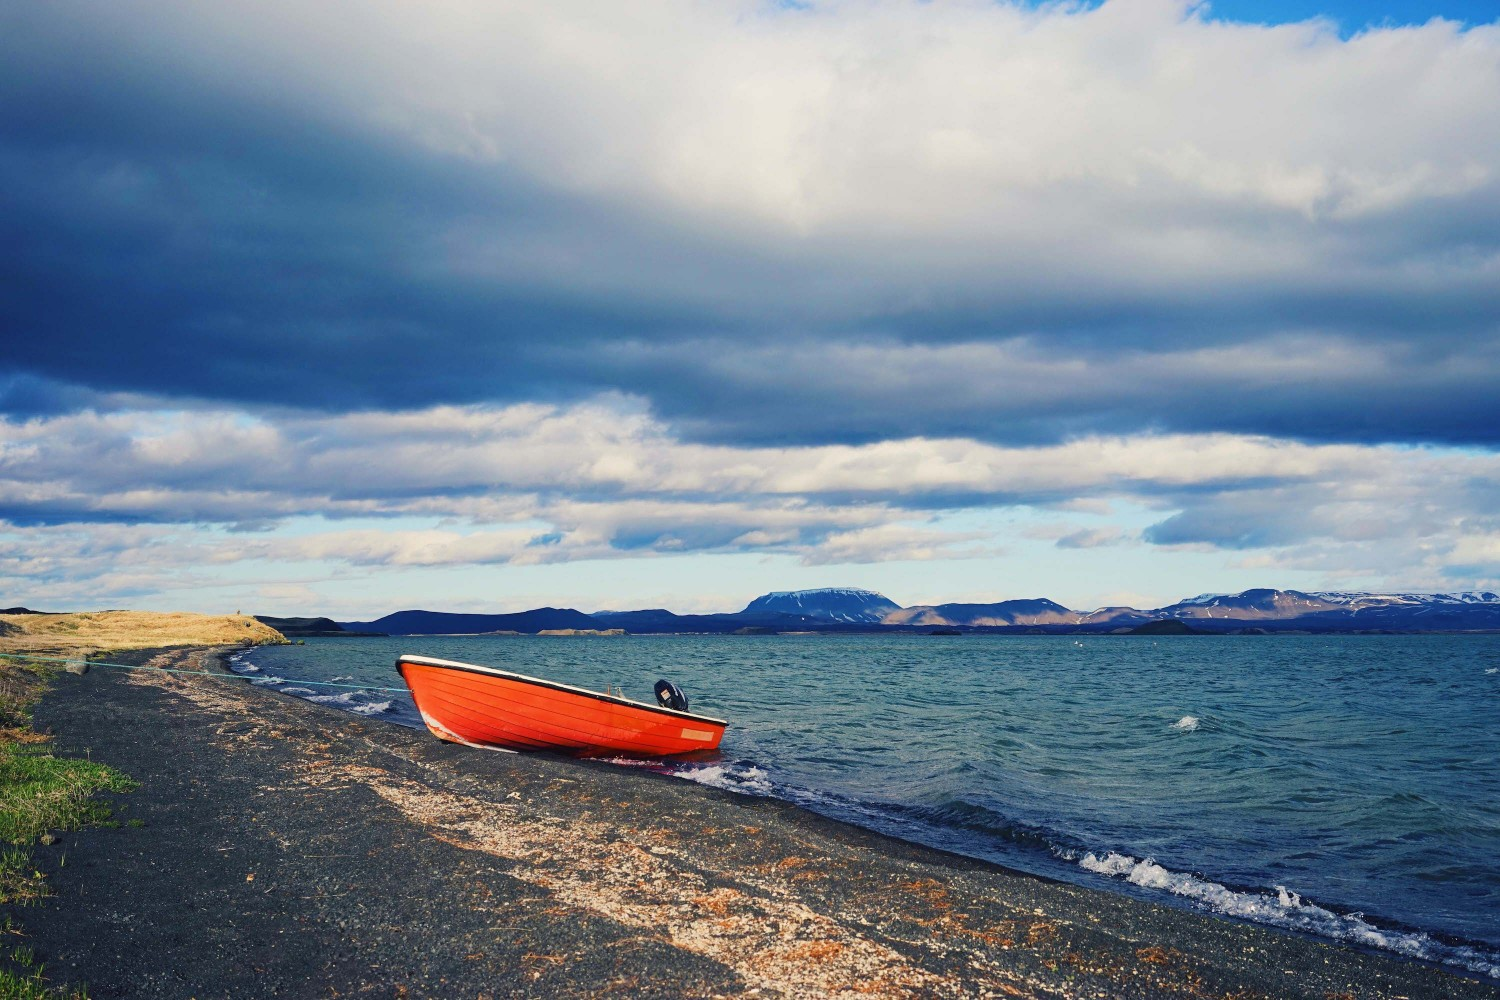 iceland-solo-boat-dante-vincent-photography-61